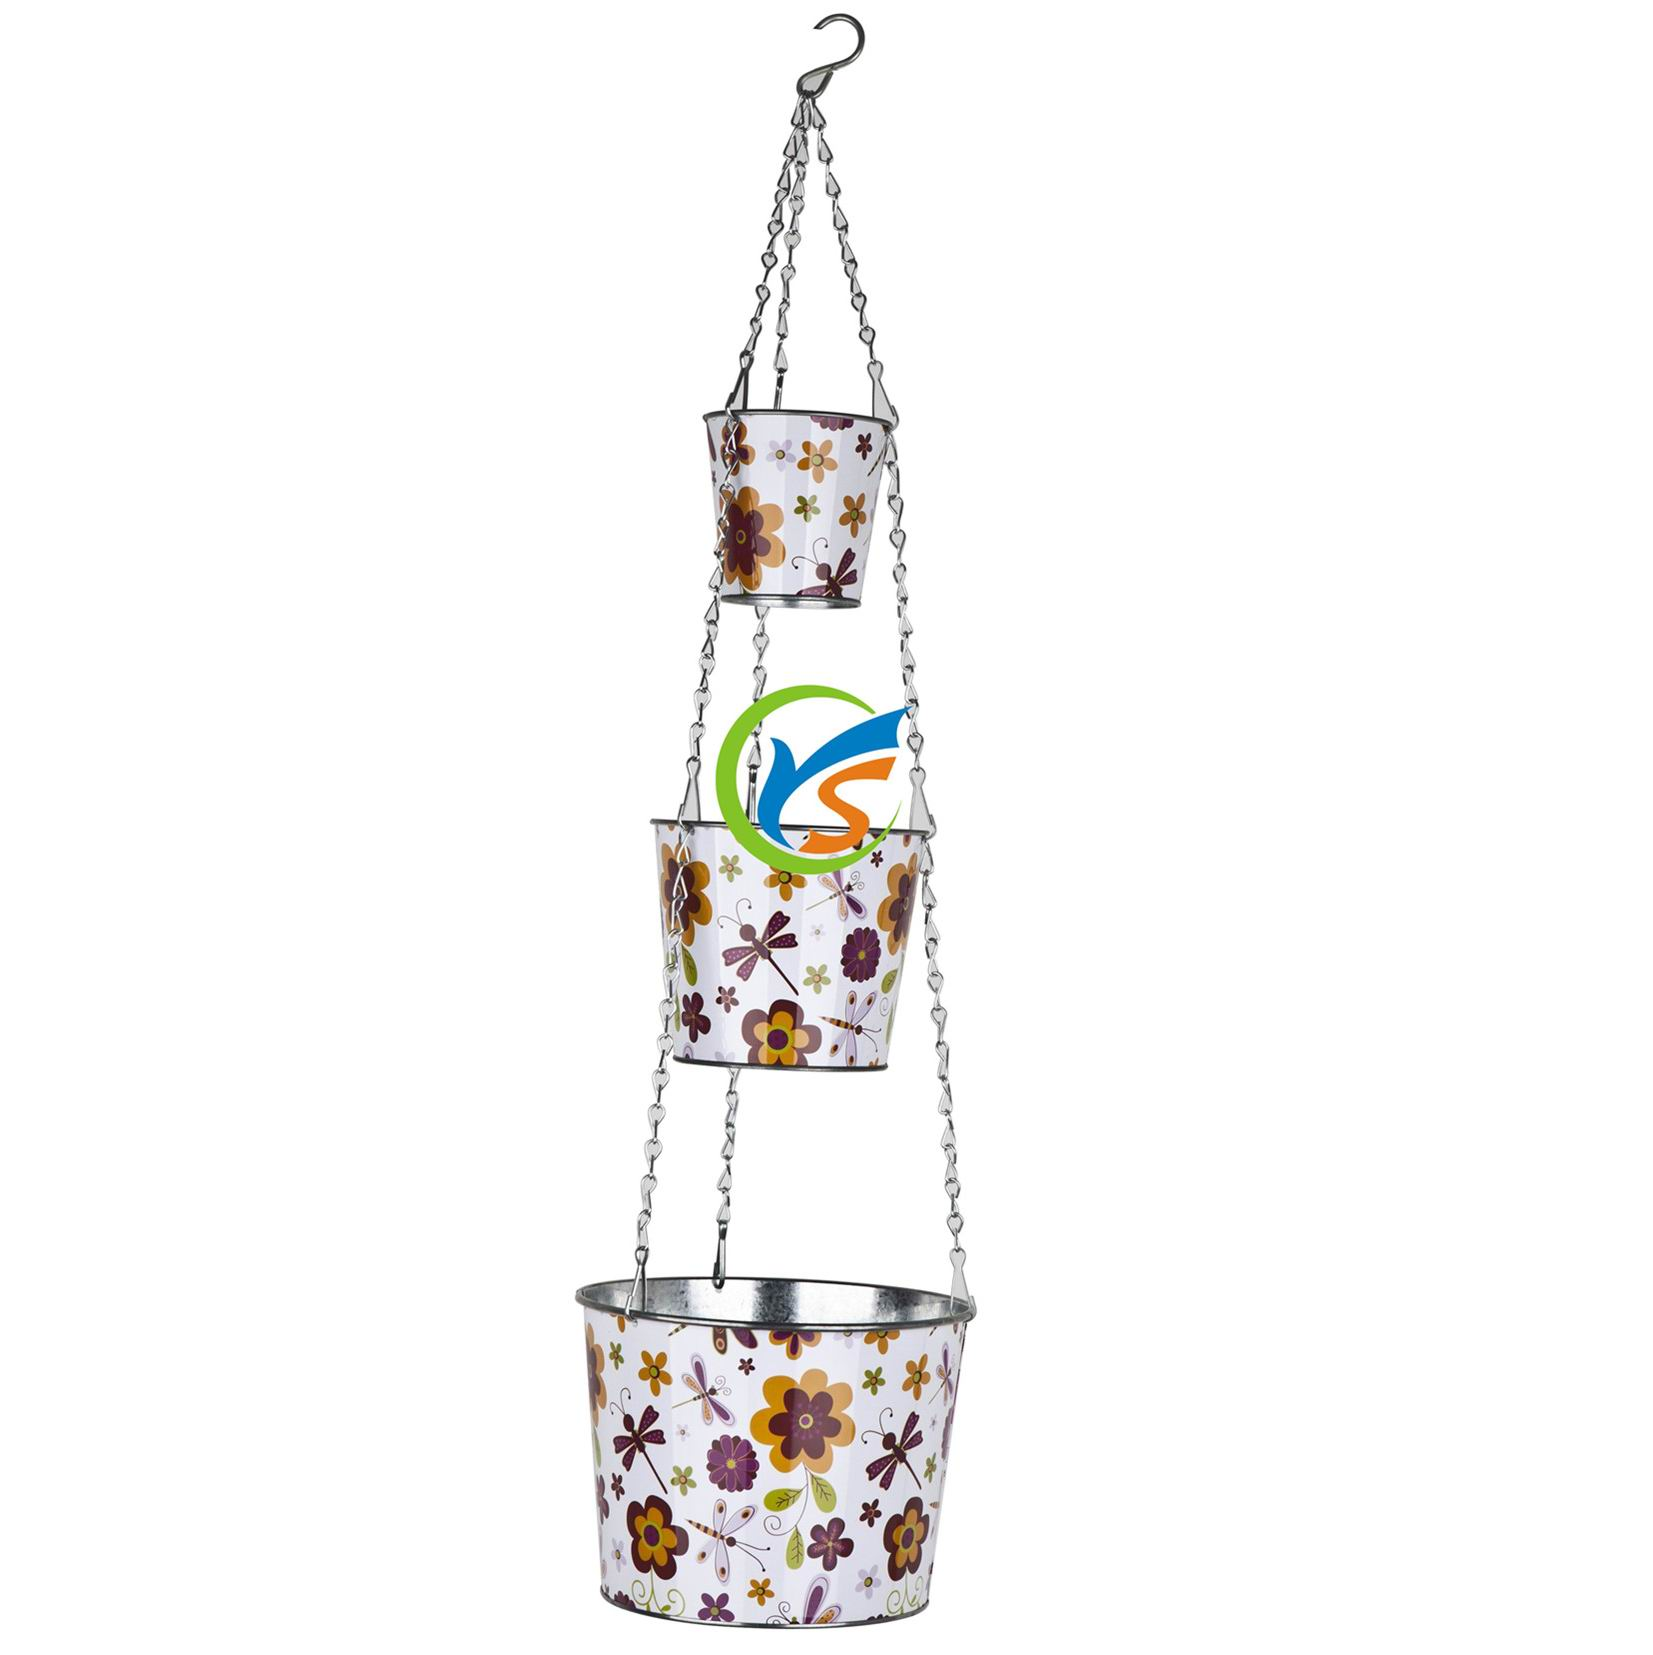 Metal Flower Hanging Baskets : Galvanized metal flower pot hanging baskets buy